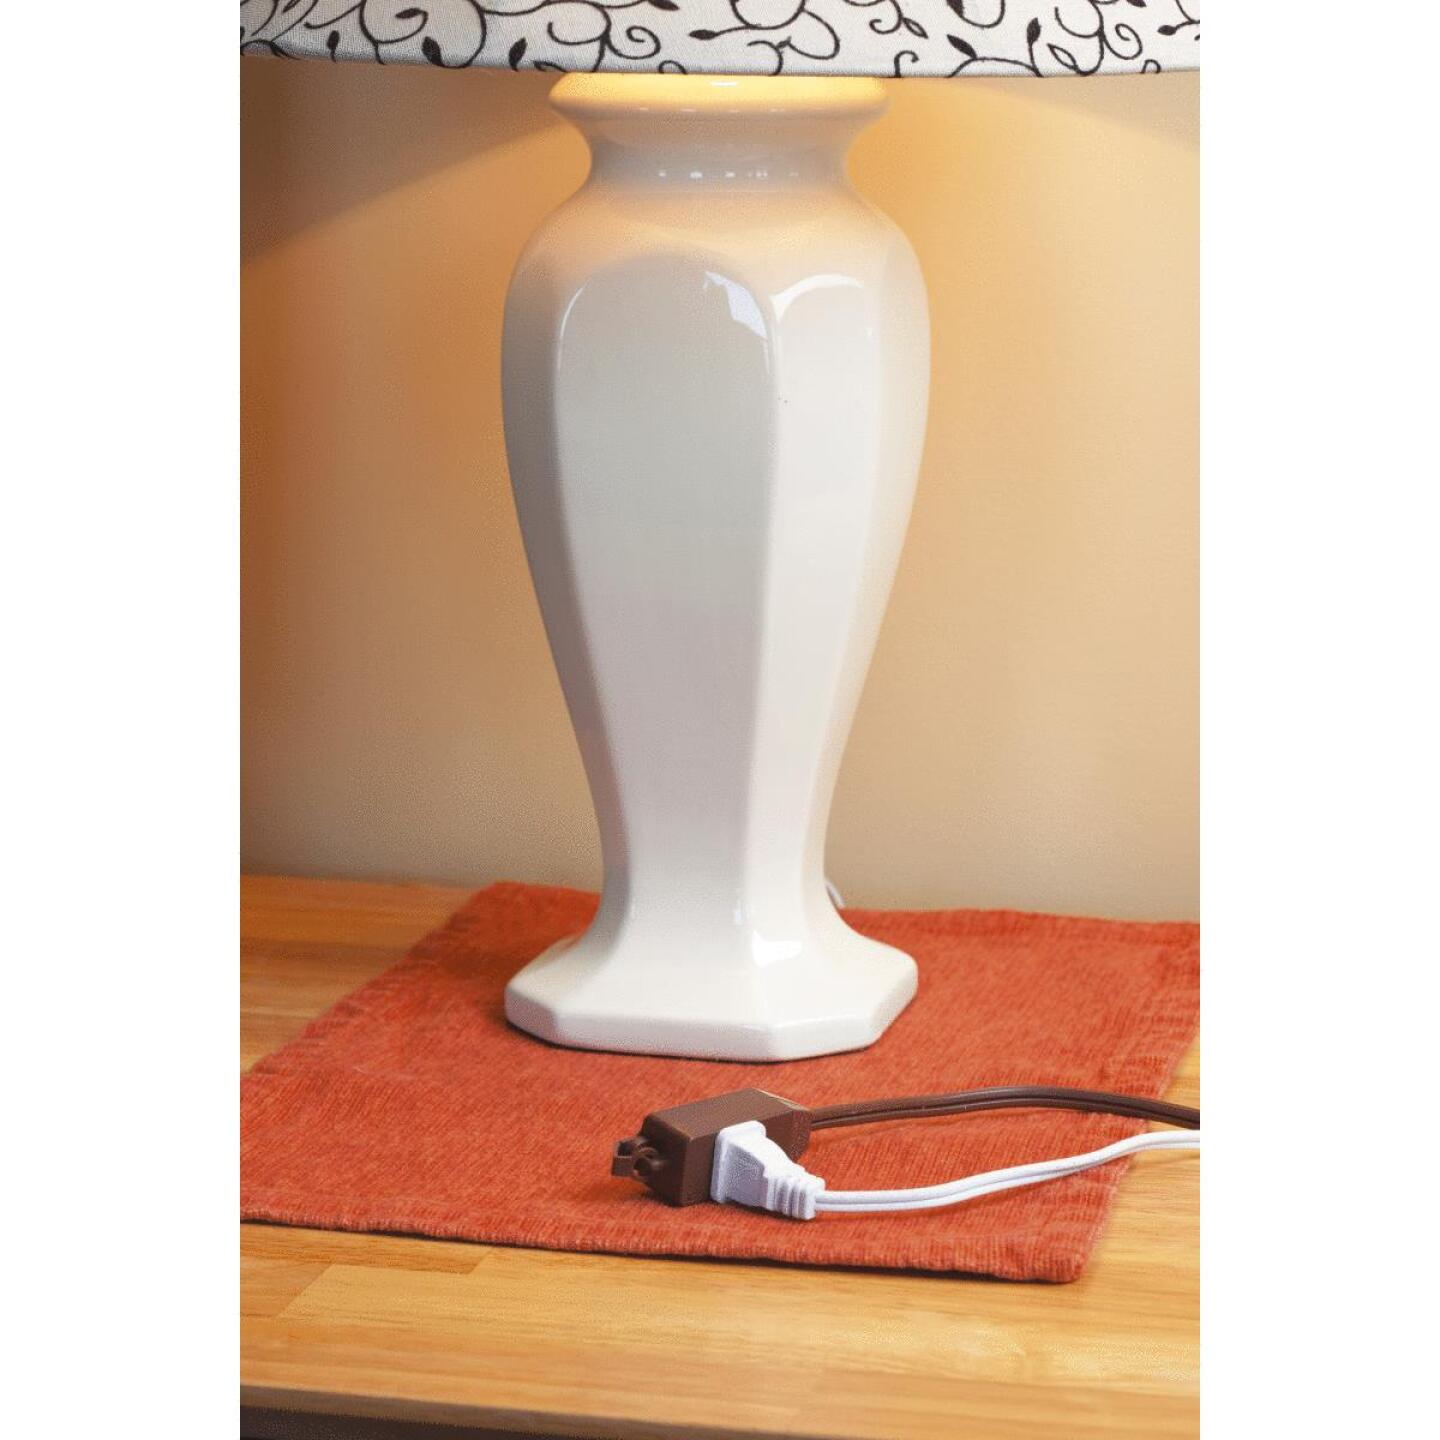 Do it Best 9 Ft. 16/2 Brown Cube Tap Extension Cord Image 2